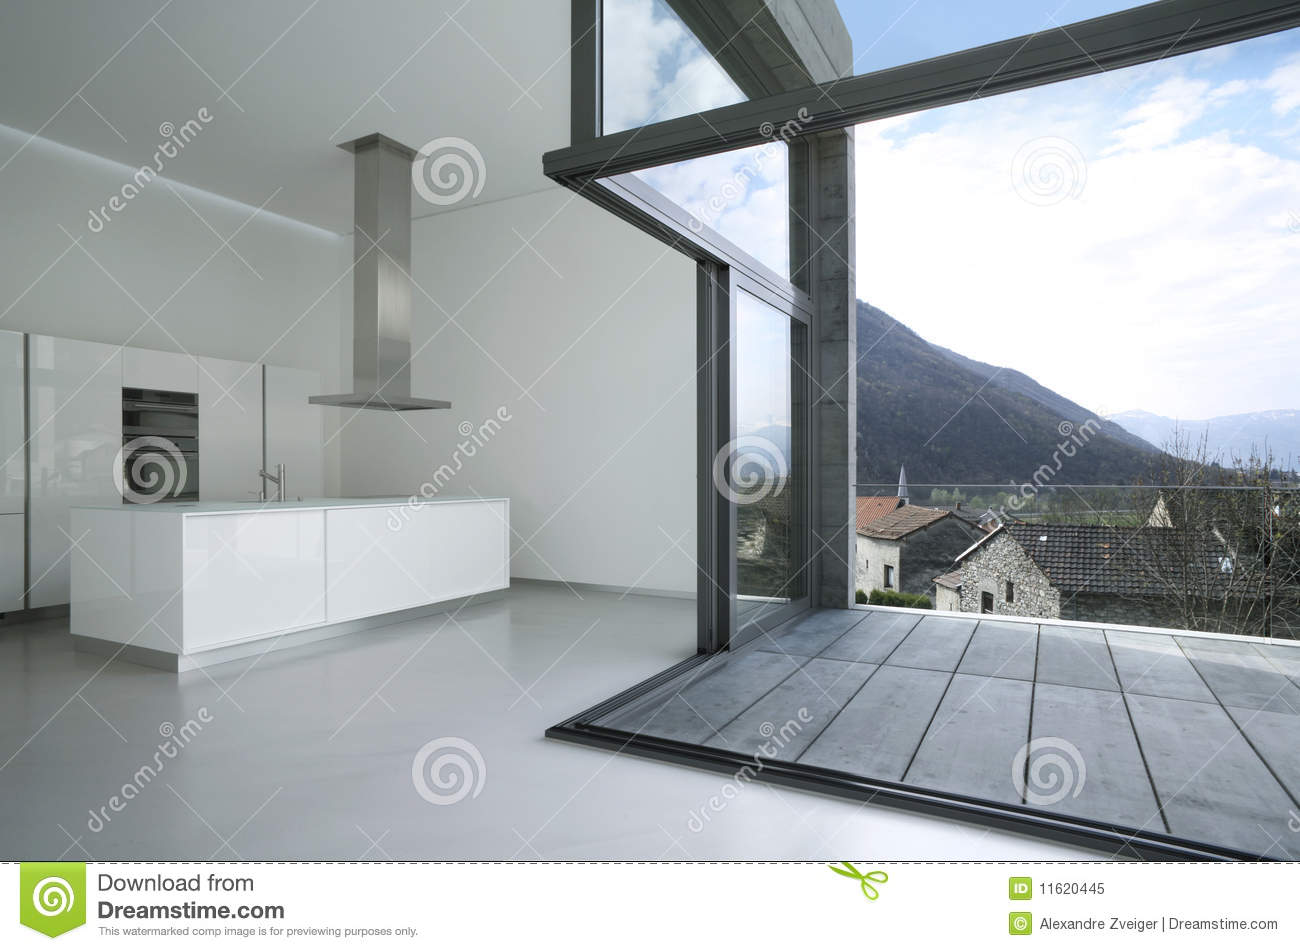 Maison moderne vide photo libre de droits image 11620445 for Assurer une maison vide